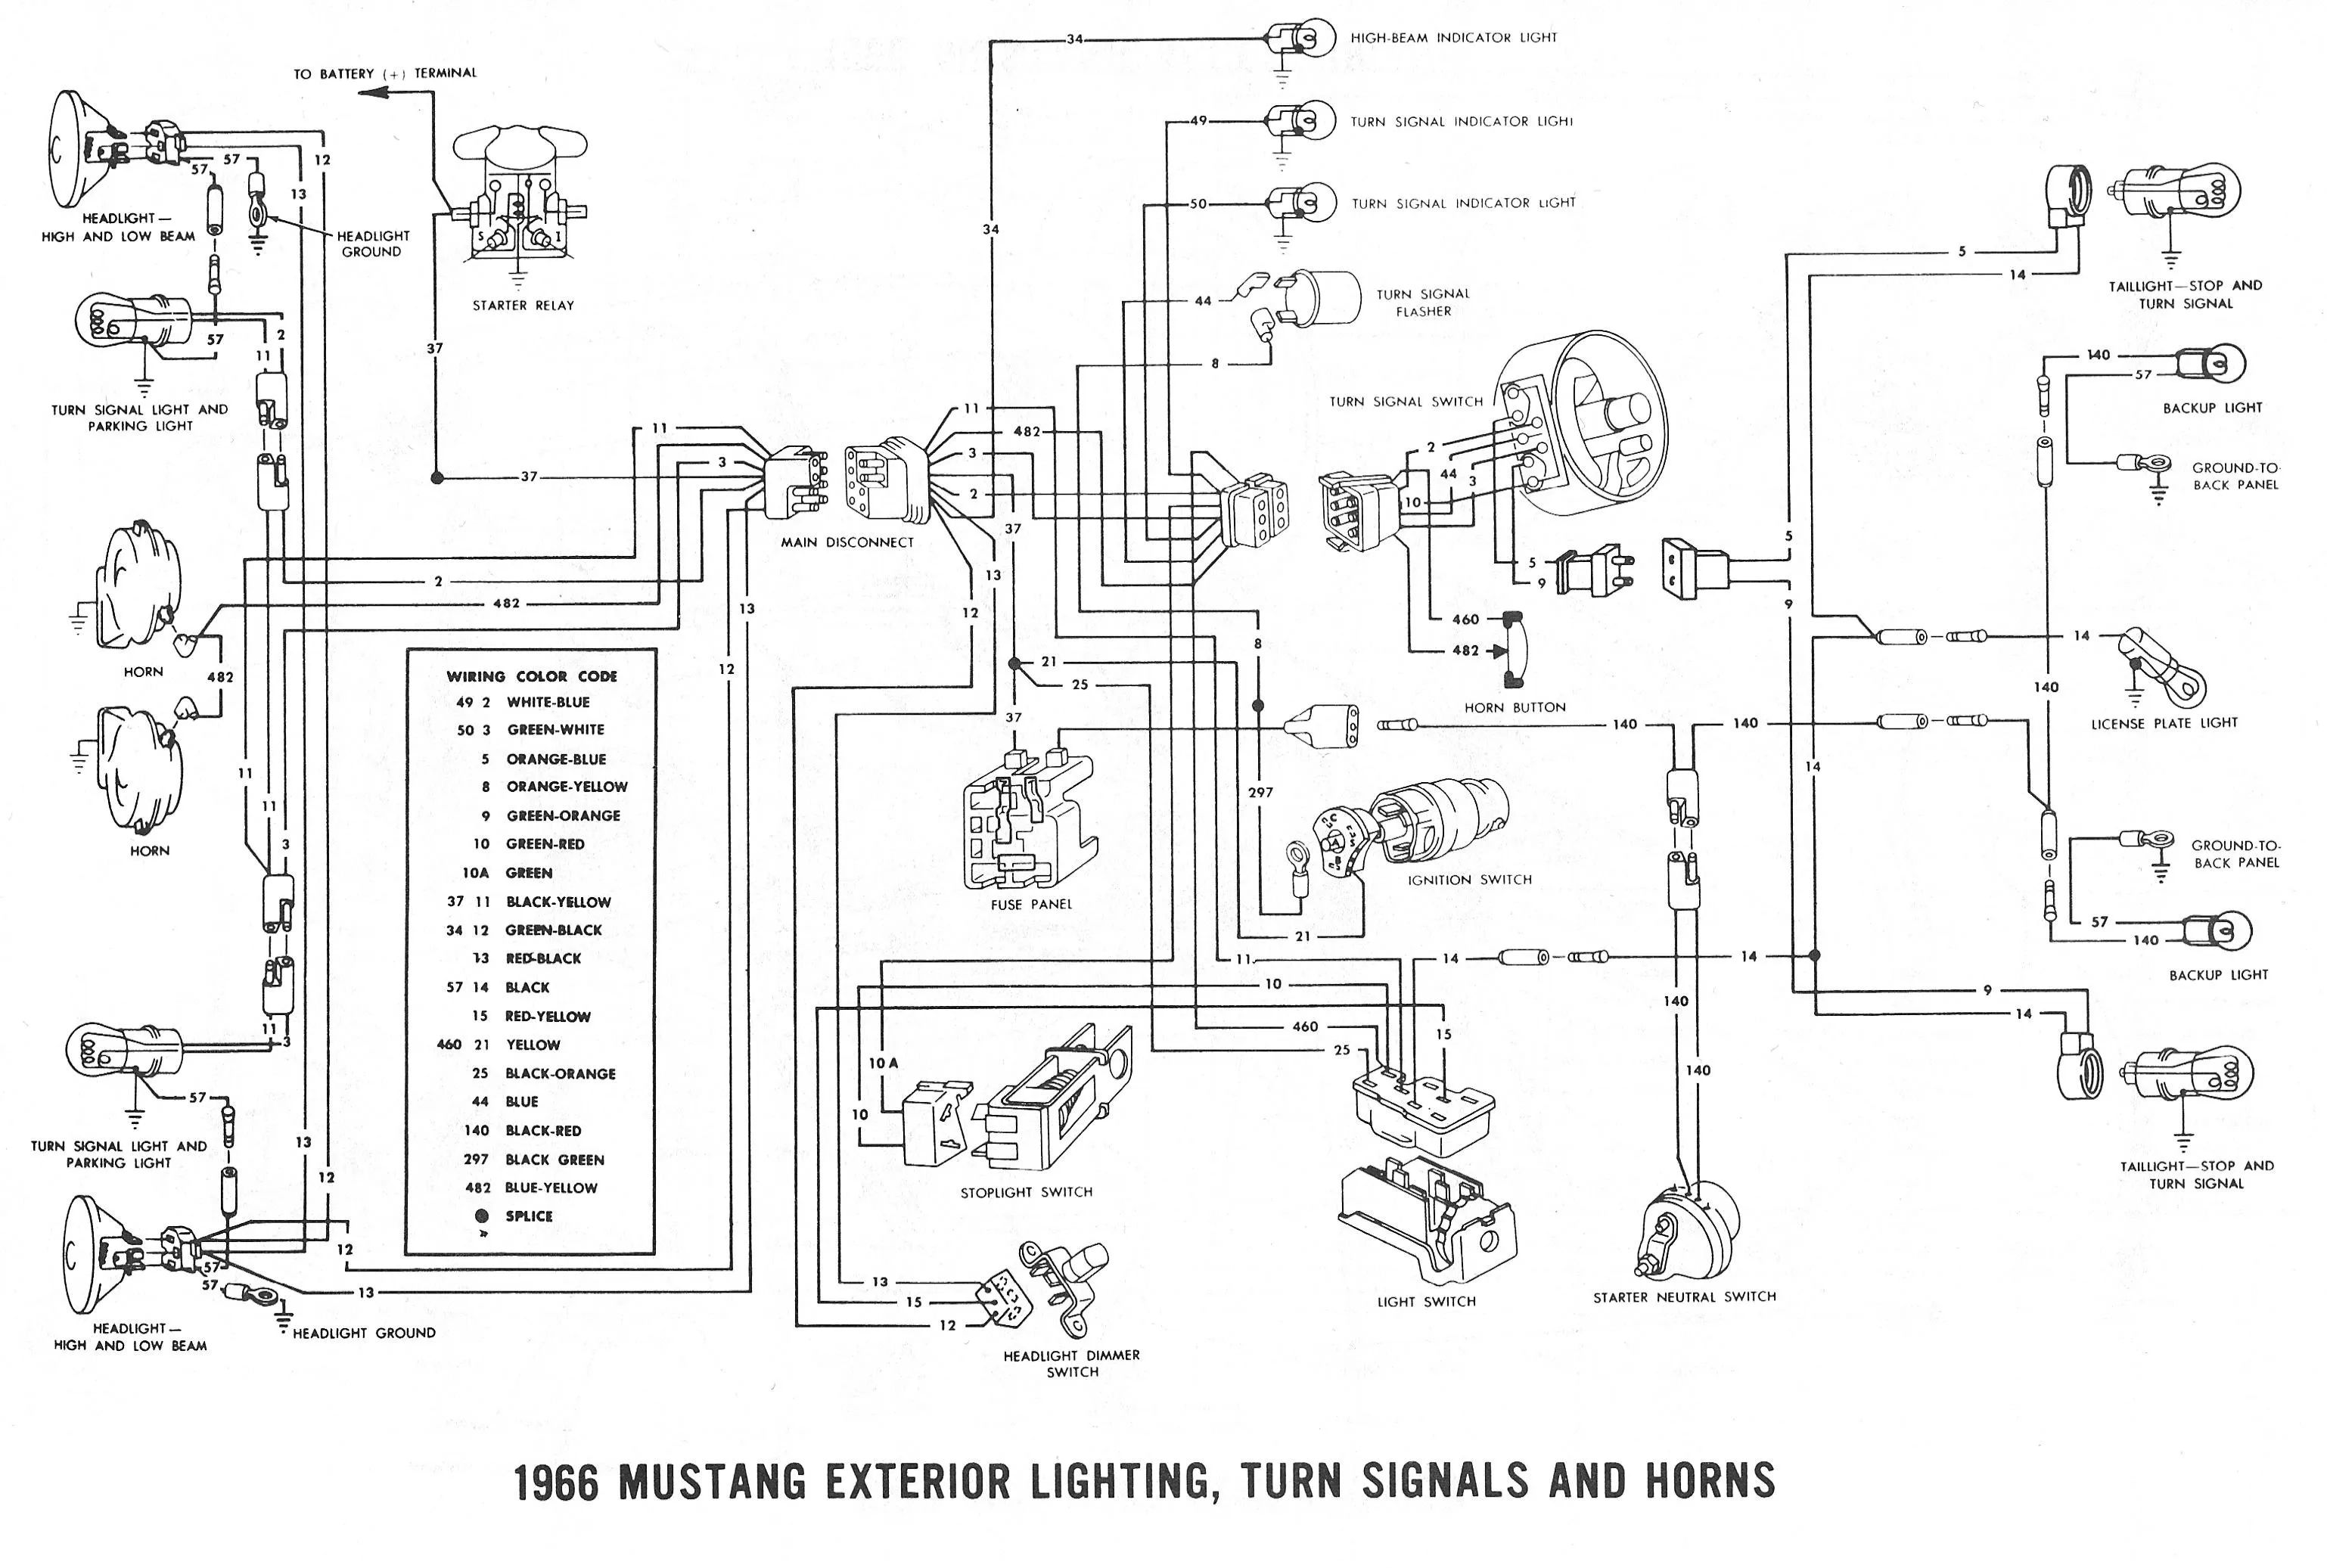 alternator wiring diagram on a 1965 mustang